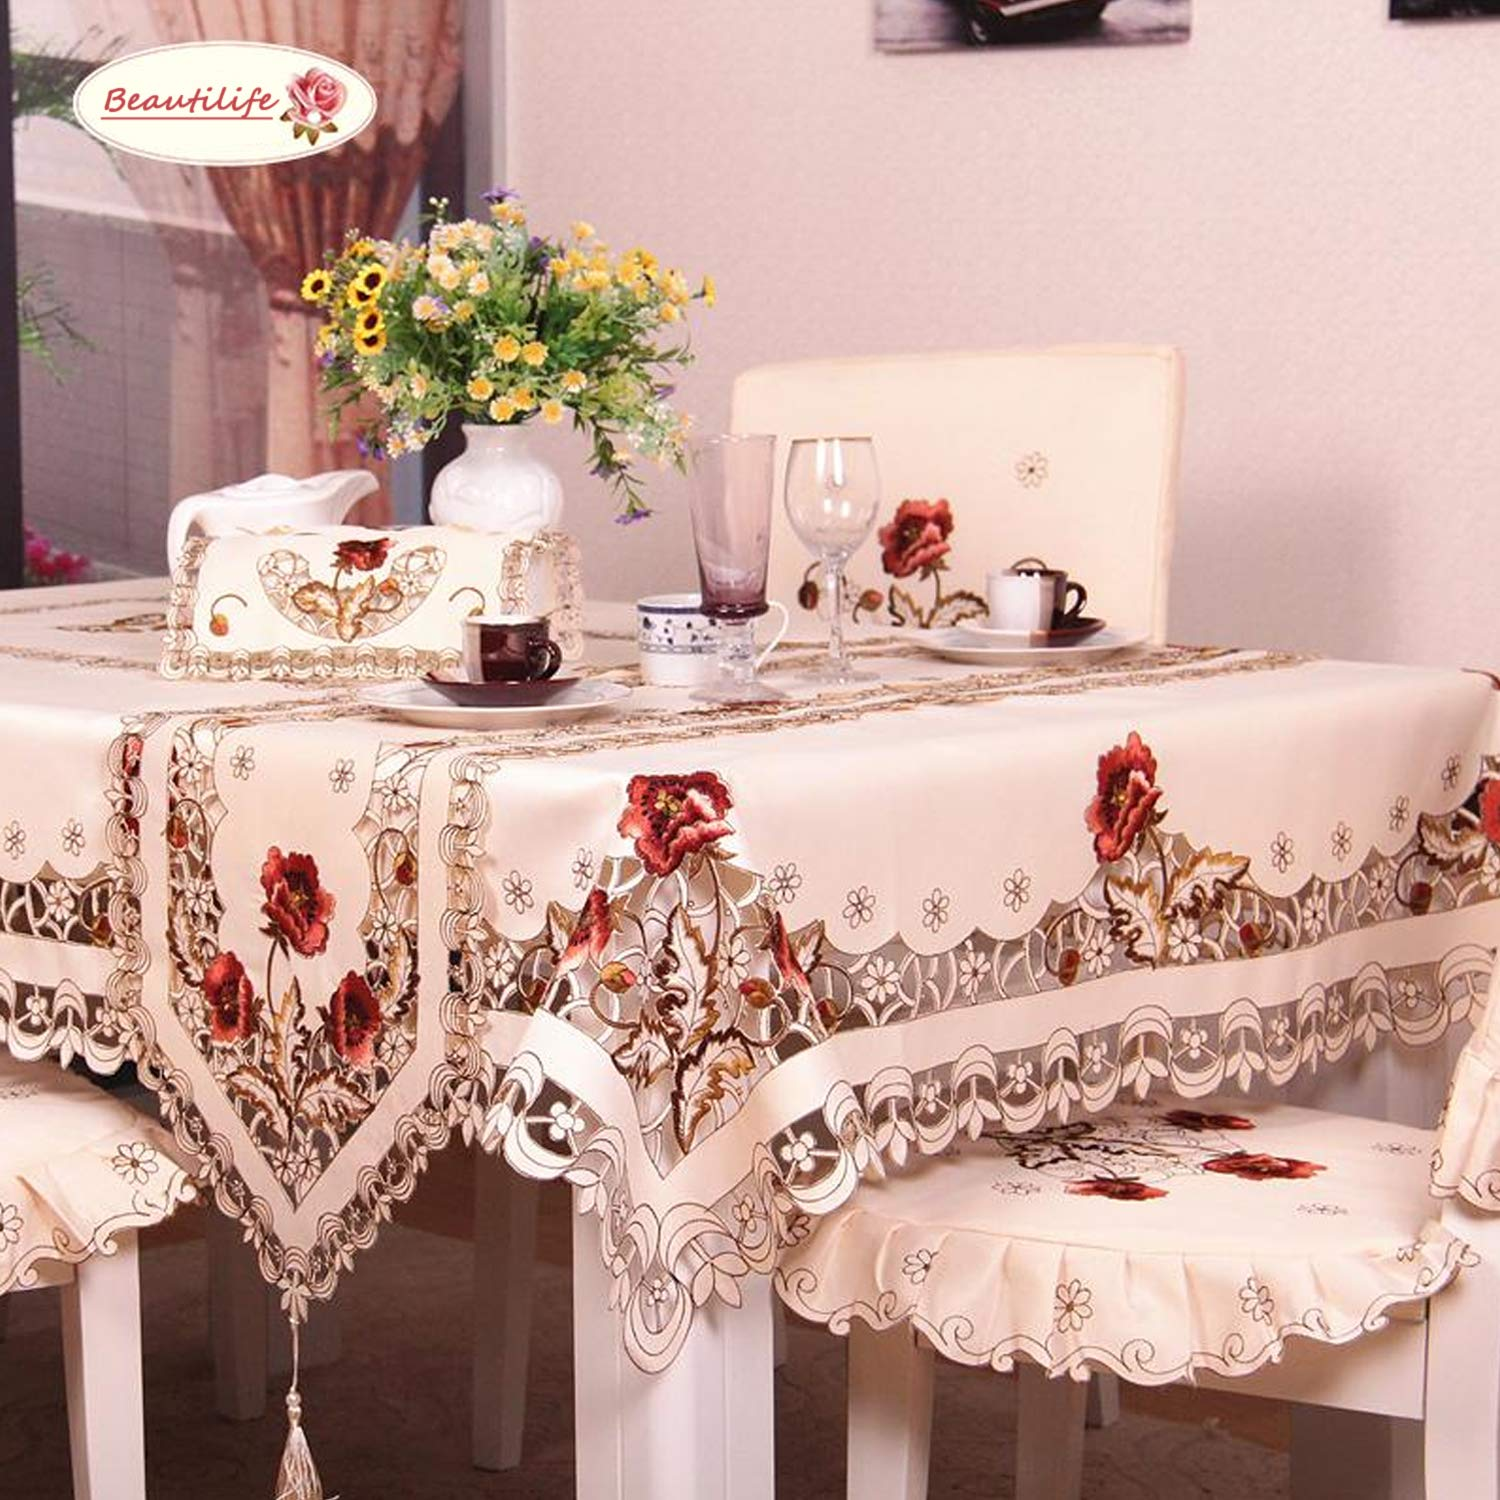 BeautiLife Flower Embroidered Lace Cream Tablecloth Luxury Cutwork Table Cloths Cover Rectangular